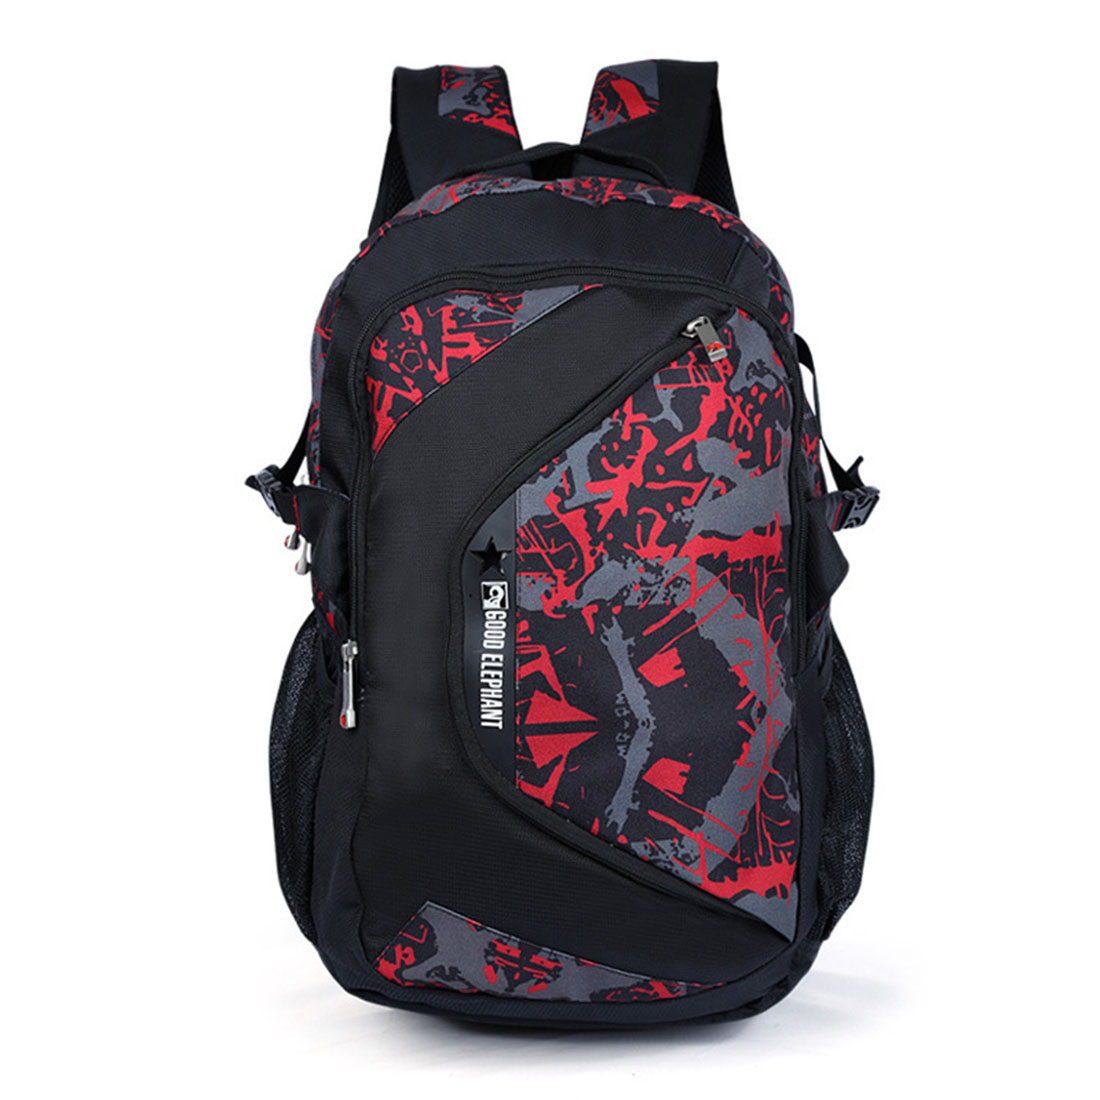 ... 33L Waterproof Outdoor Sports Bag Backpack for Teenage Girls Boys  Shoulder Bags Traveling Camping Cycling Bag Large Space US   24.23  piece  ... 71c7e99e4e